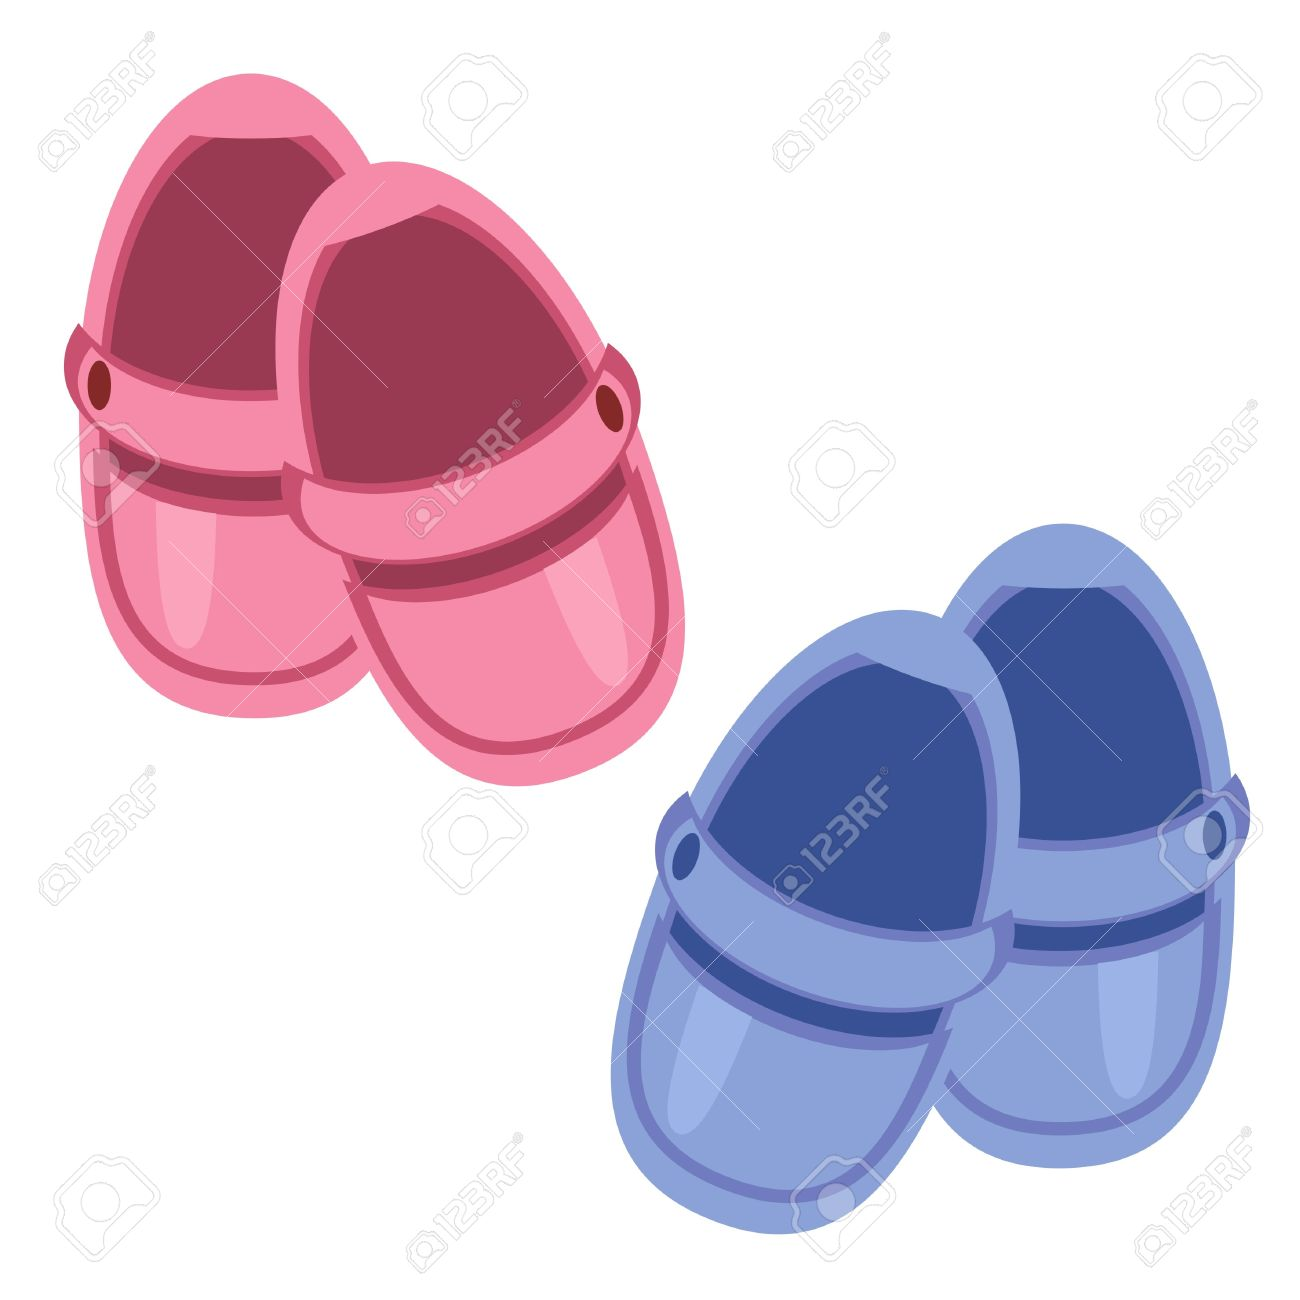 Children Shoes On White Background Royalty Free Cliparts, Vectors ...